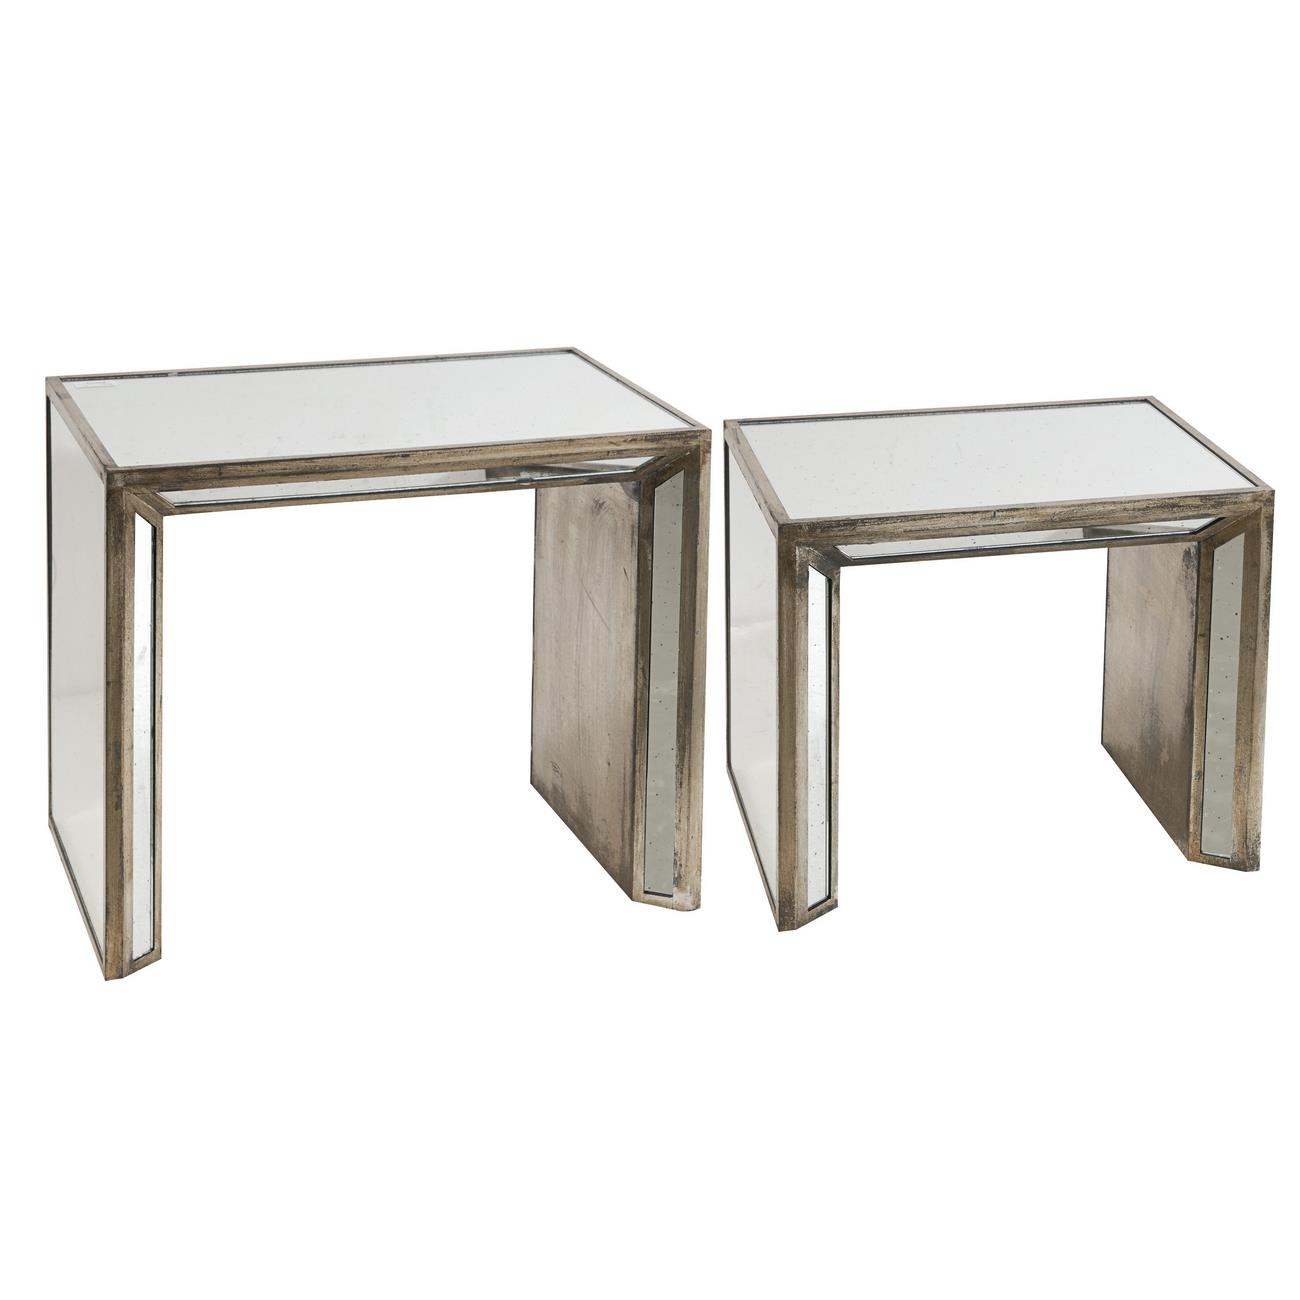 A & B Home Occasional Accents Waverly Mirrored Nesting Side Tables - Item Number: ABHO-36137